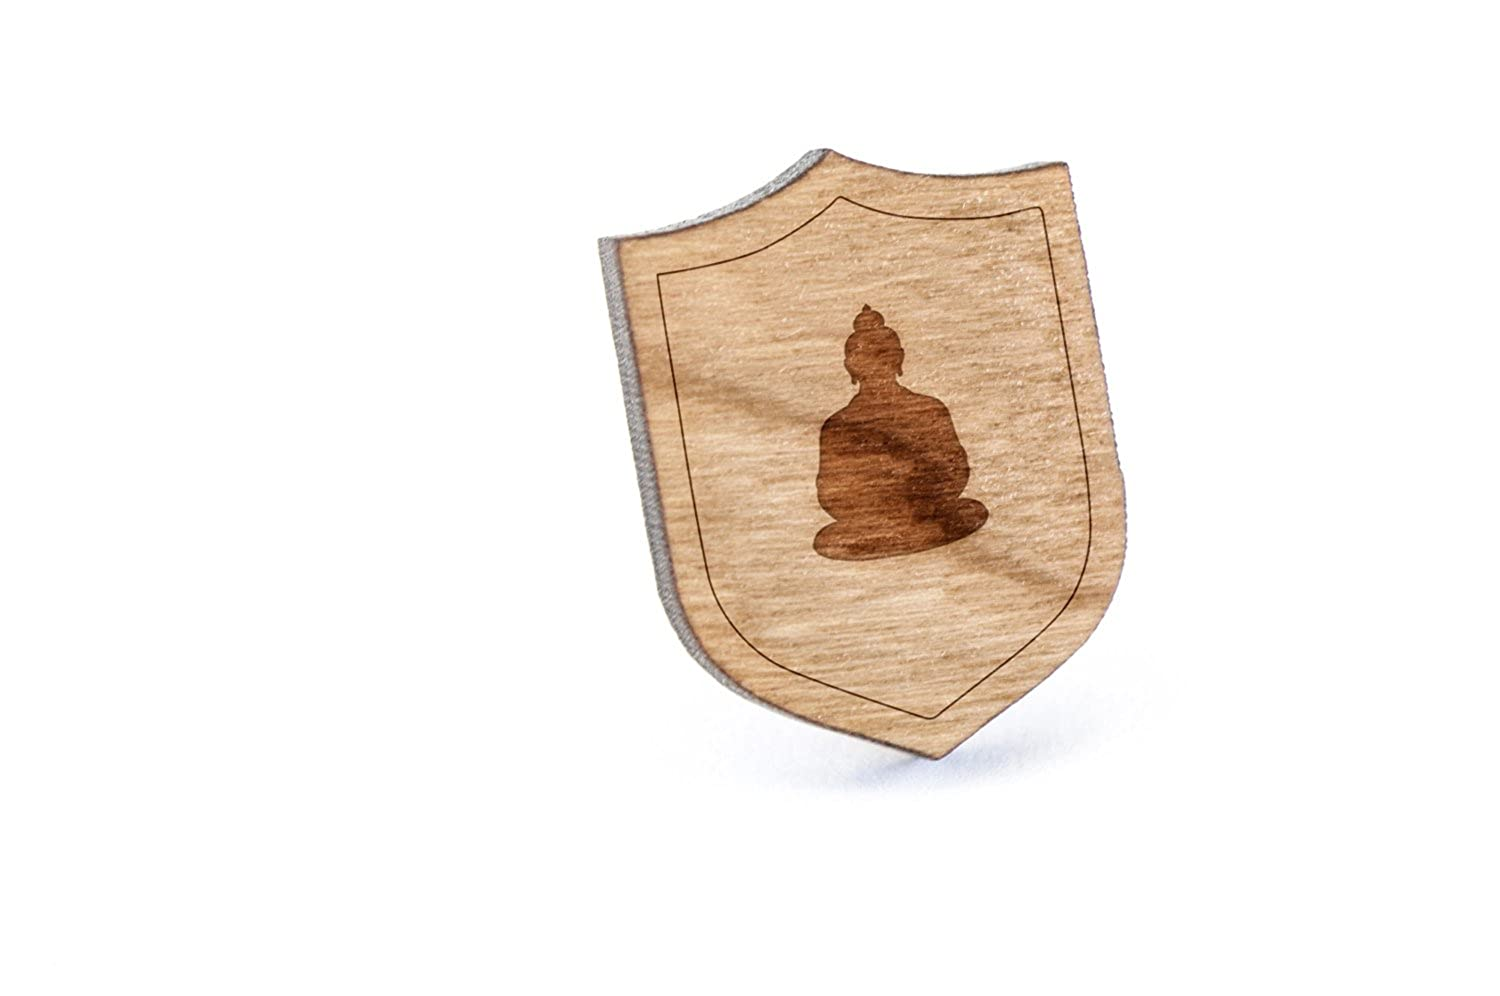 Buddha Lapel Pin, Wooden Pin Wooden Accessories Company buddha-pin